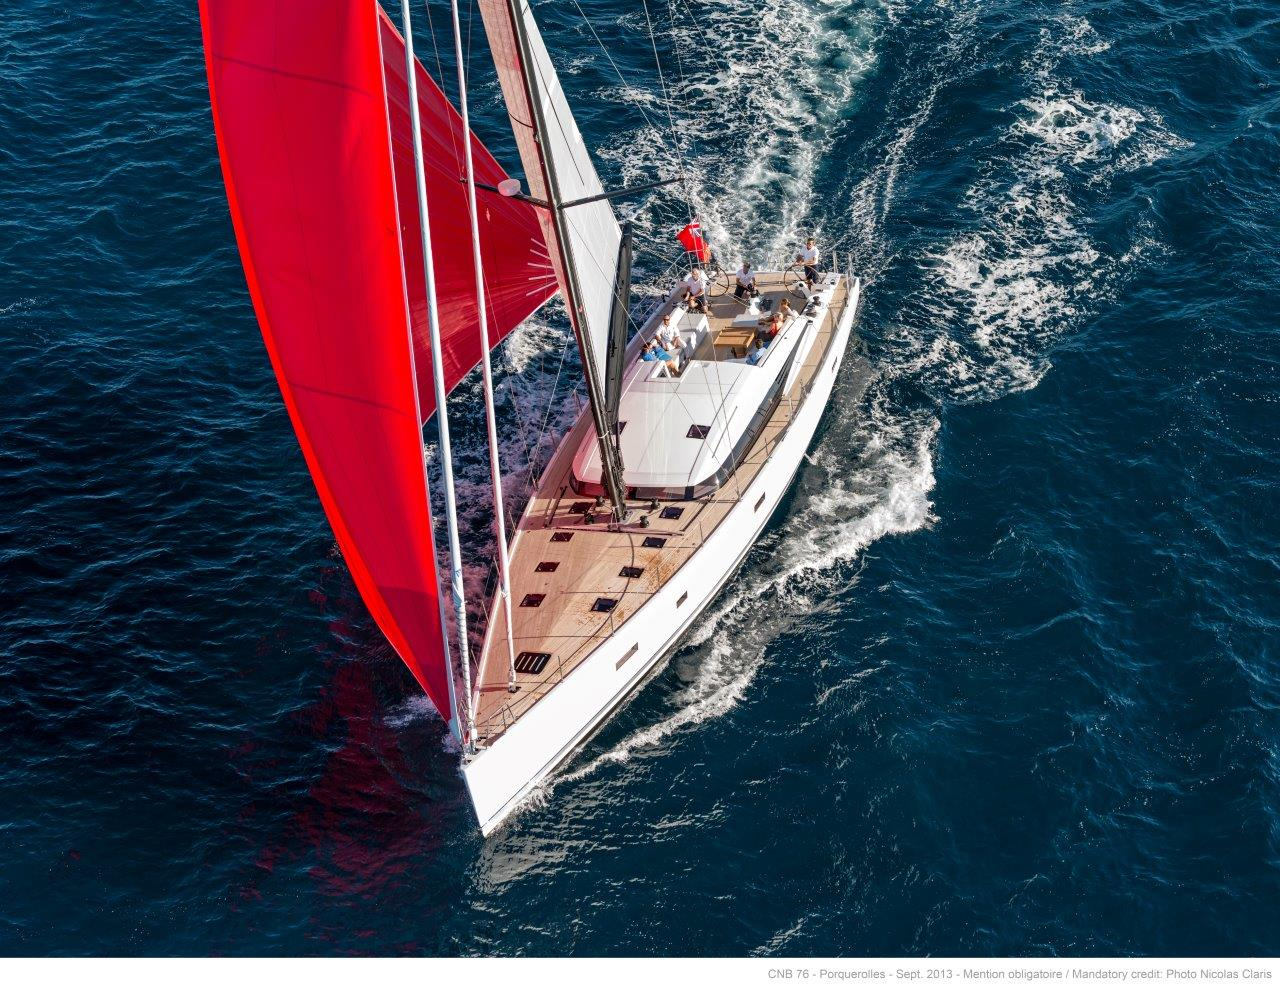 Sydney yachtsman Ervin Vidor has shipped his recently launched 23 metre yacht